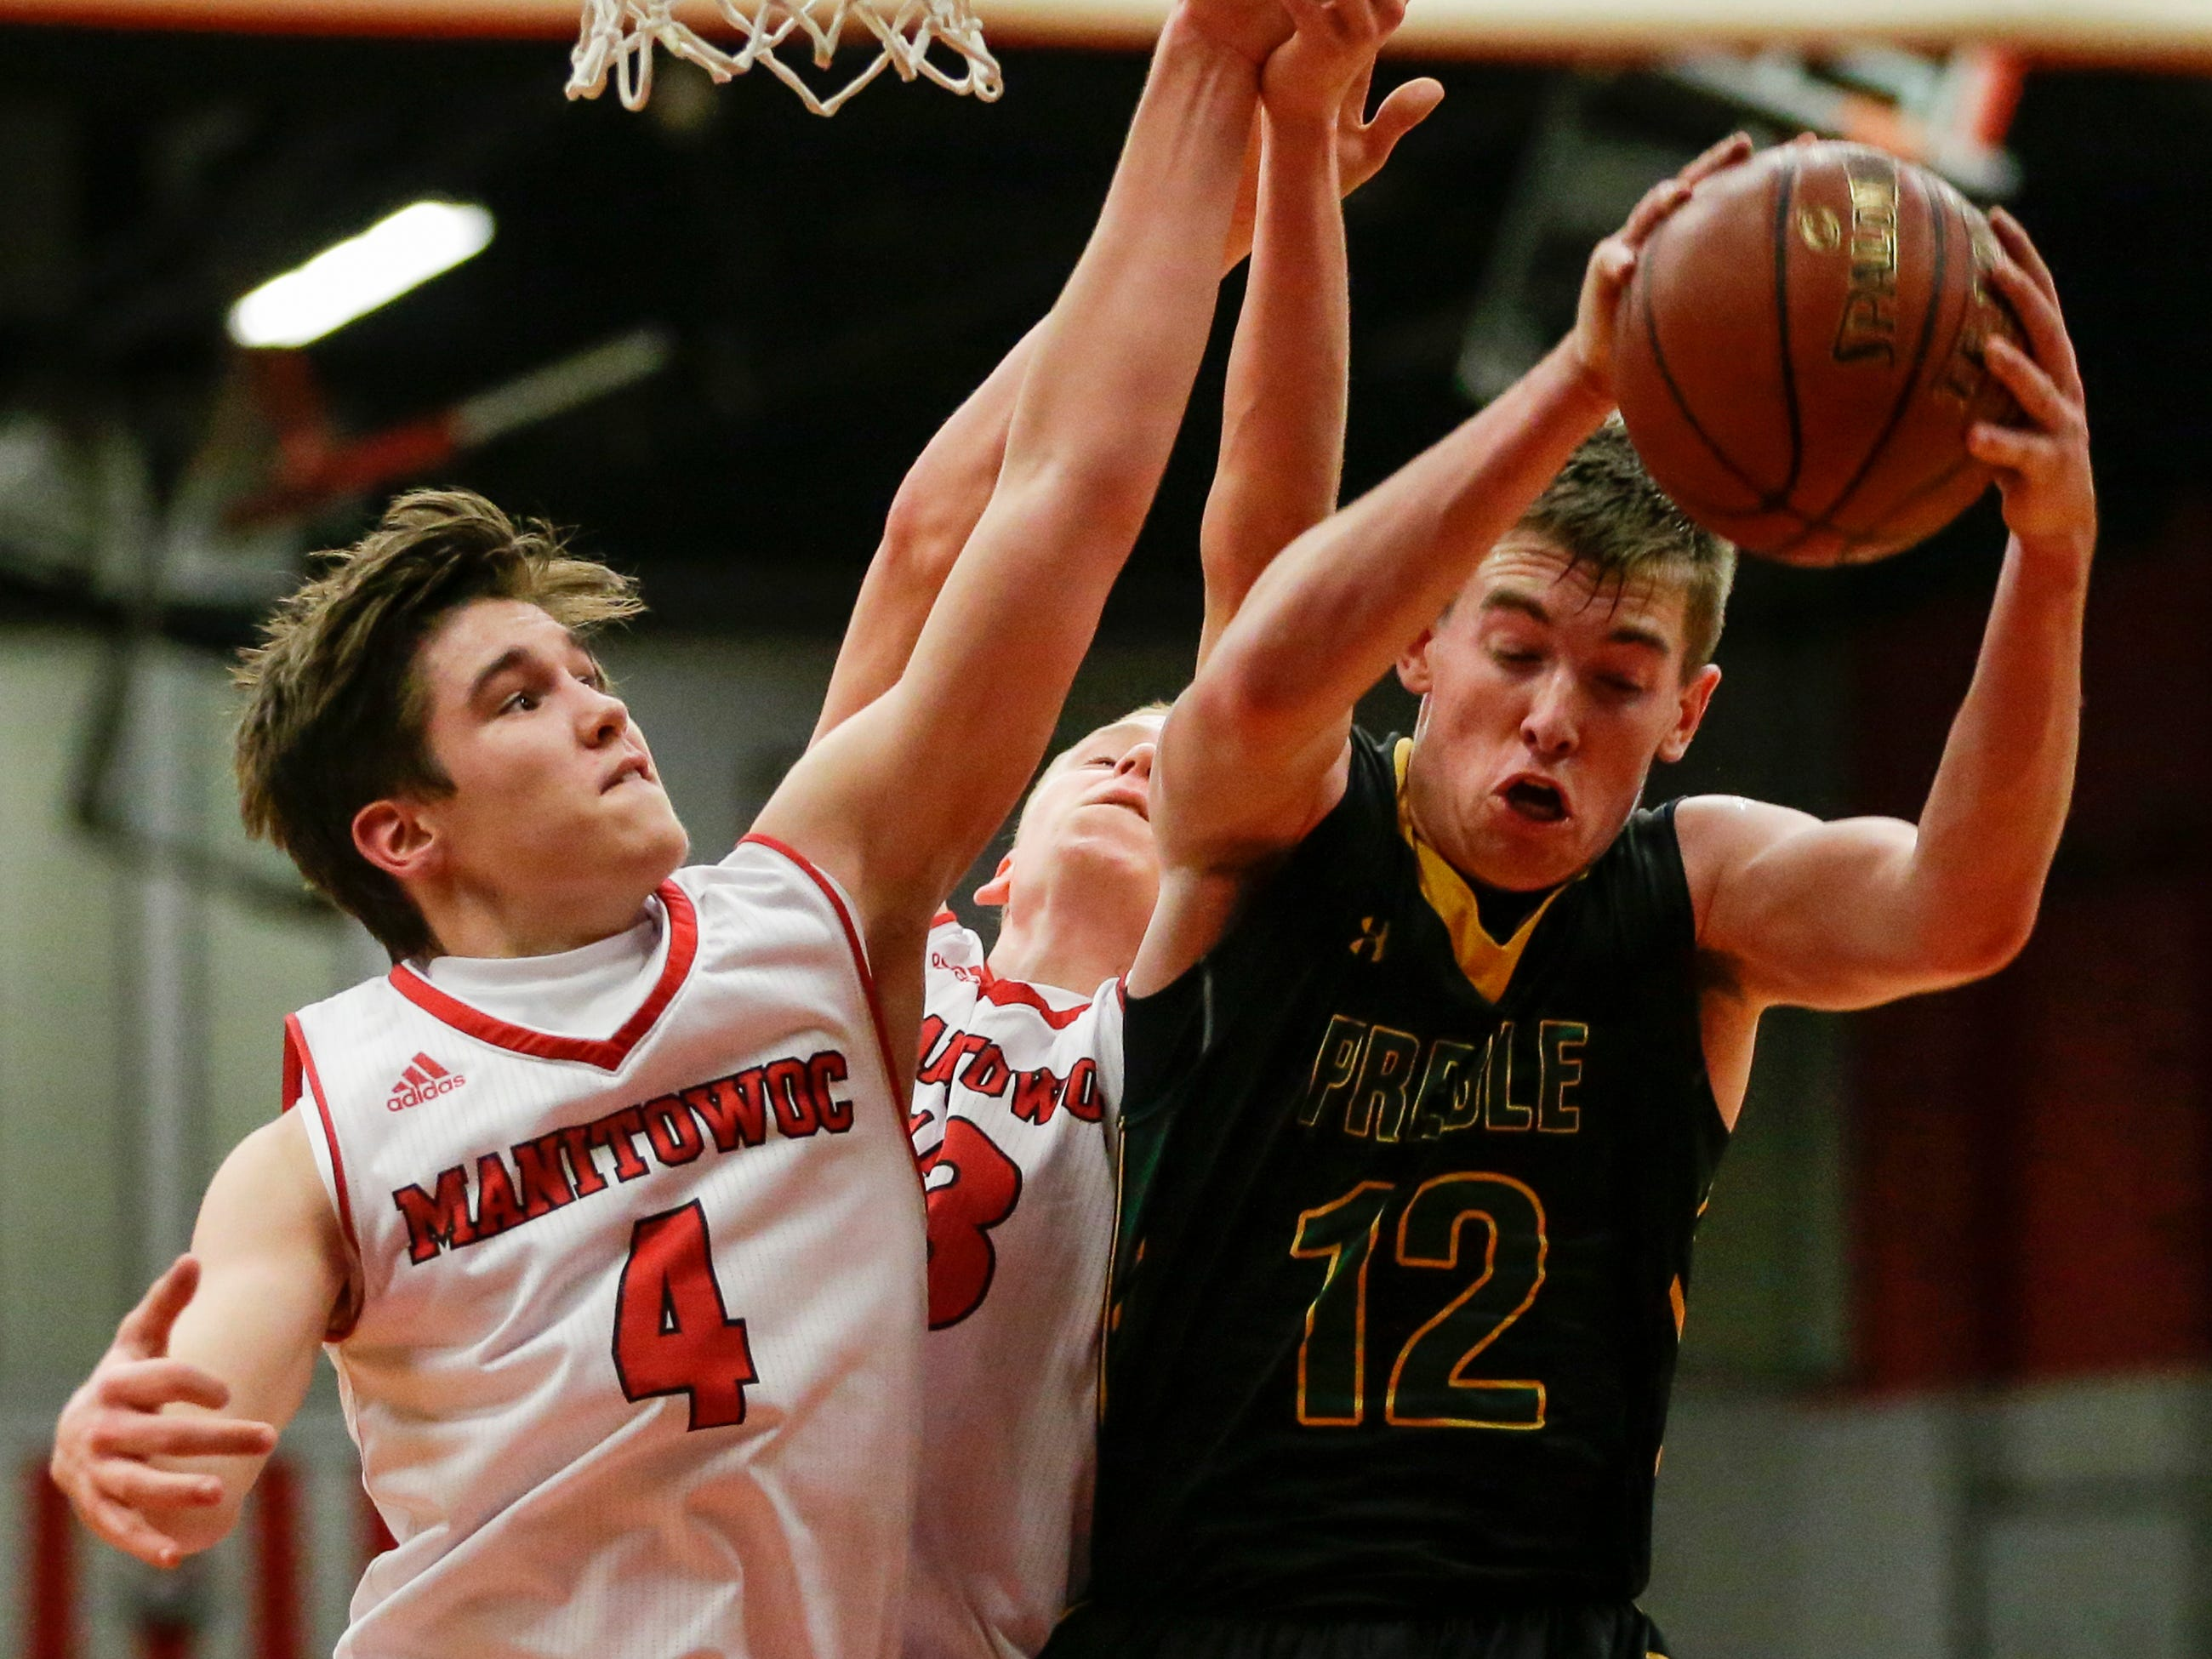 Green Bay Preble's Josh Nicklaus gets the rebound against Manitowoc Lincoln's Mason Dopirak and Sam Jacobson (13) during boys FRCC basketball at Manitowoc Lincoln High School Friday, December 21, 2018, in Manitowoc, Wis. Joshua Clark/USA TODAY NETWORK-Wisconsin